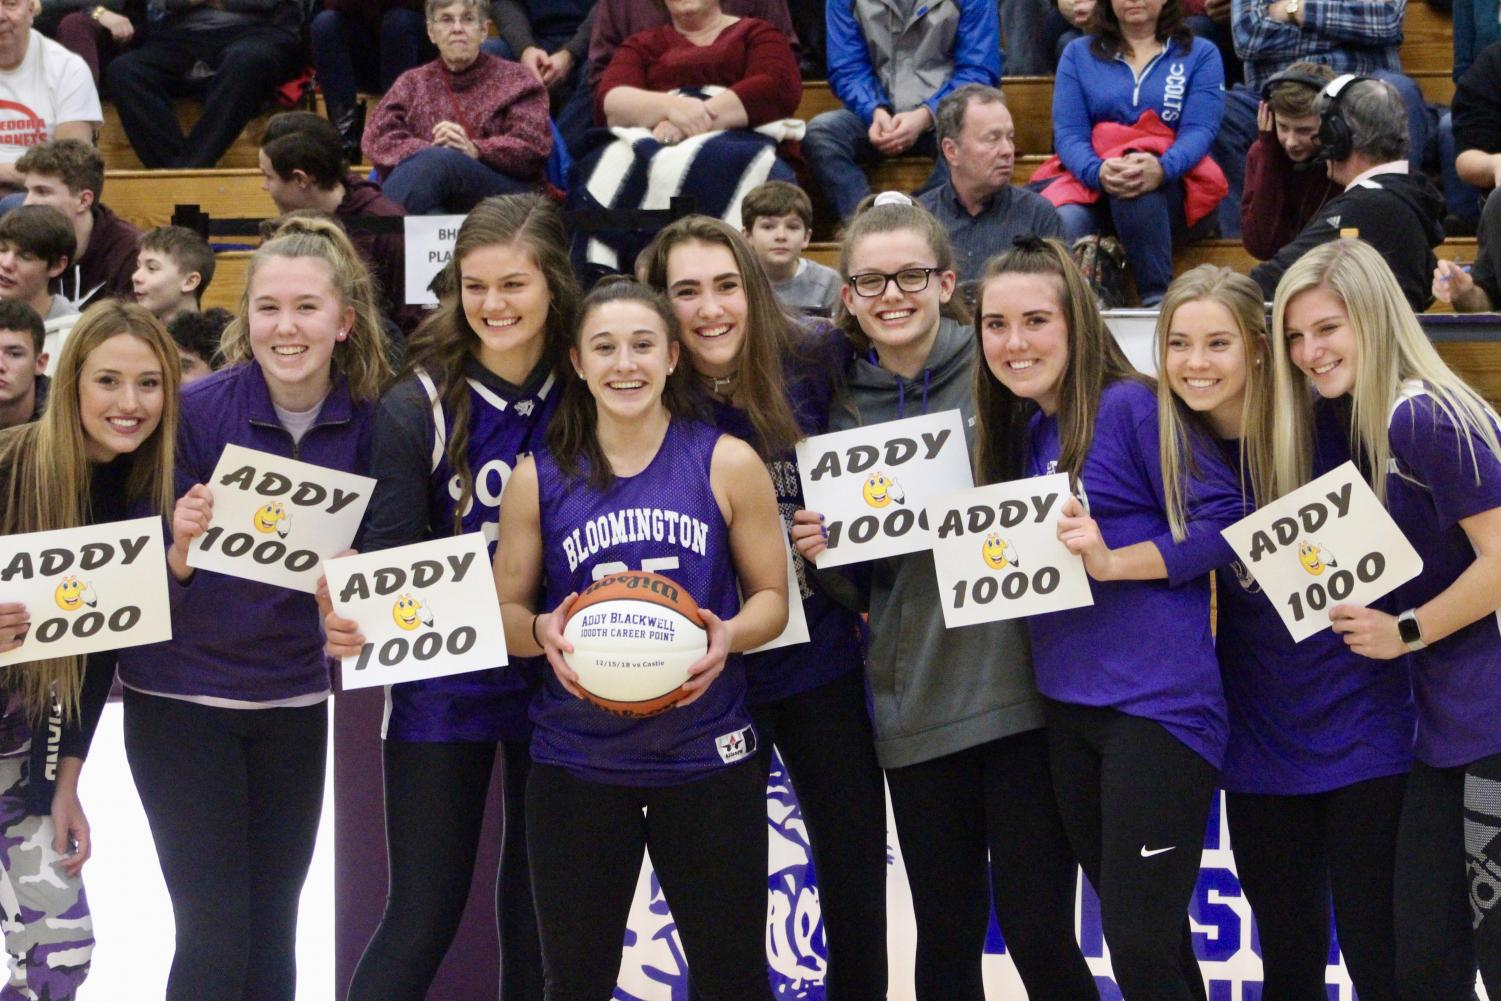 During halftime, senior girls basketball guard guard and USI commit Addy Blackwell was honored for scoring 1,000 points during her career at South